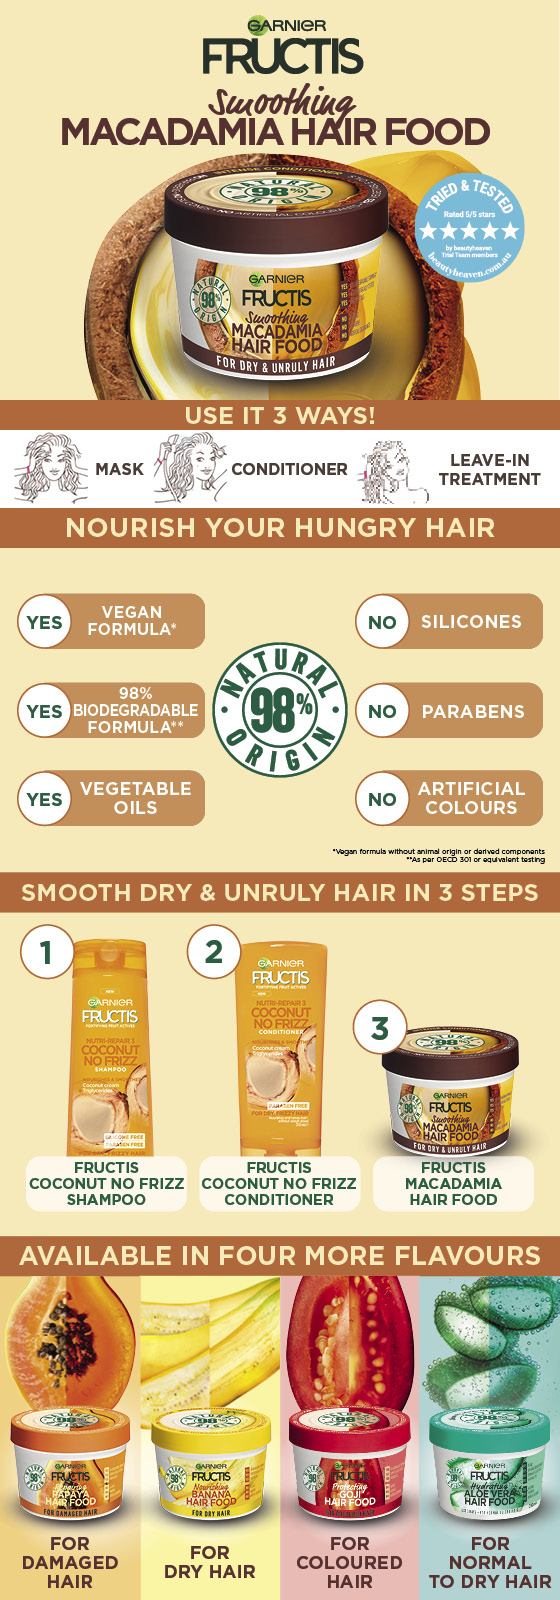 Garnier Fructis Hair Food Smoothing Macadamia